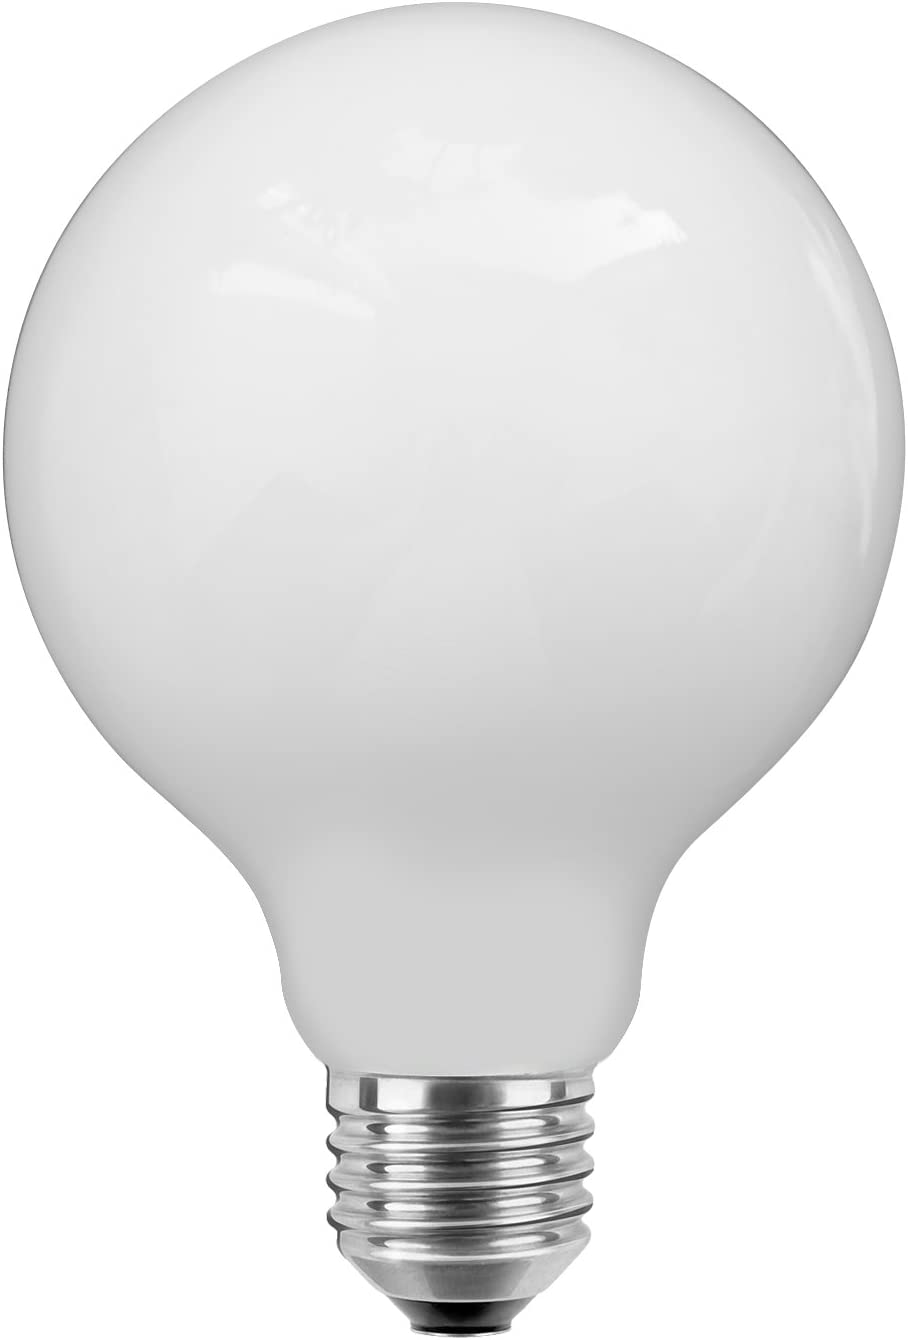 Segula 50682 - Bombilla globo de 80 LED (4 W, E27): Amazon.es ...